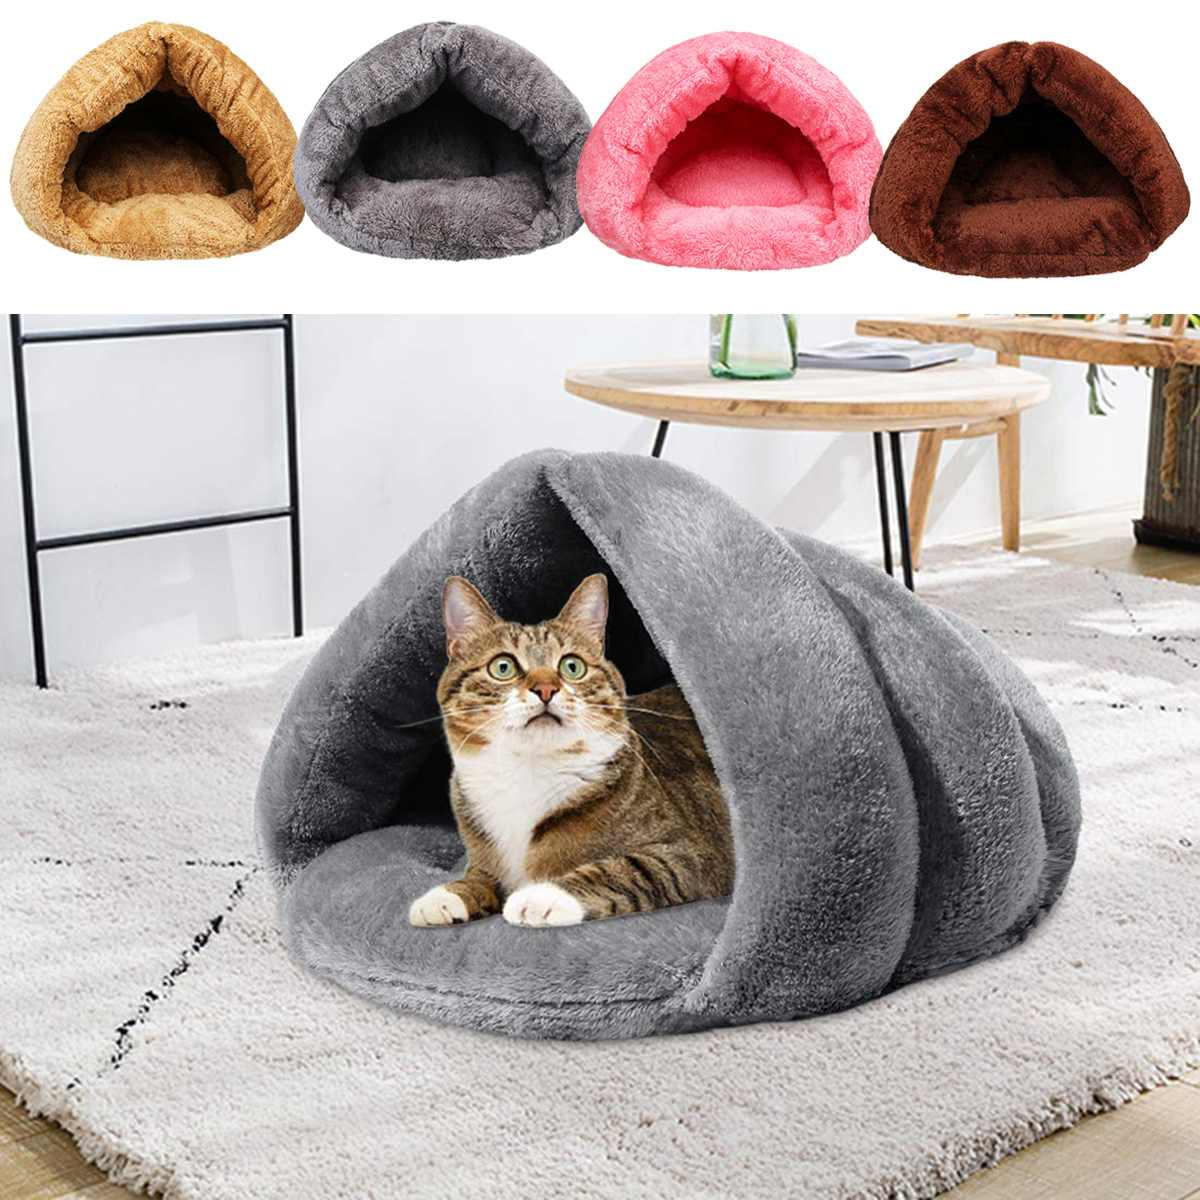 S/L <font><b>Dog</b></font> Cat Pet Beds Cotton Teddy Rabbit Bed House Snow Rena <font><b>Dog</b></font> Basket For Small Medium <font><b>Dog</b></font> Soft Warm Beds House image